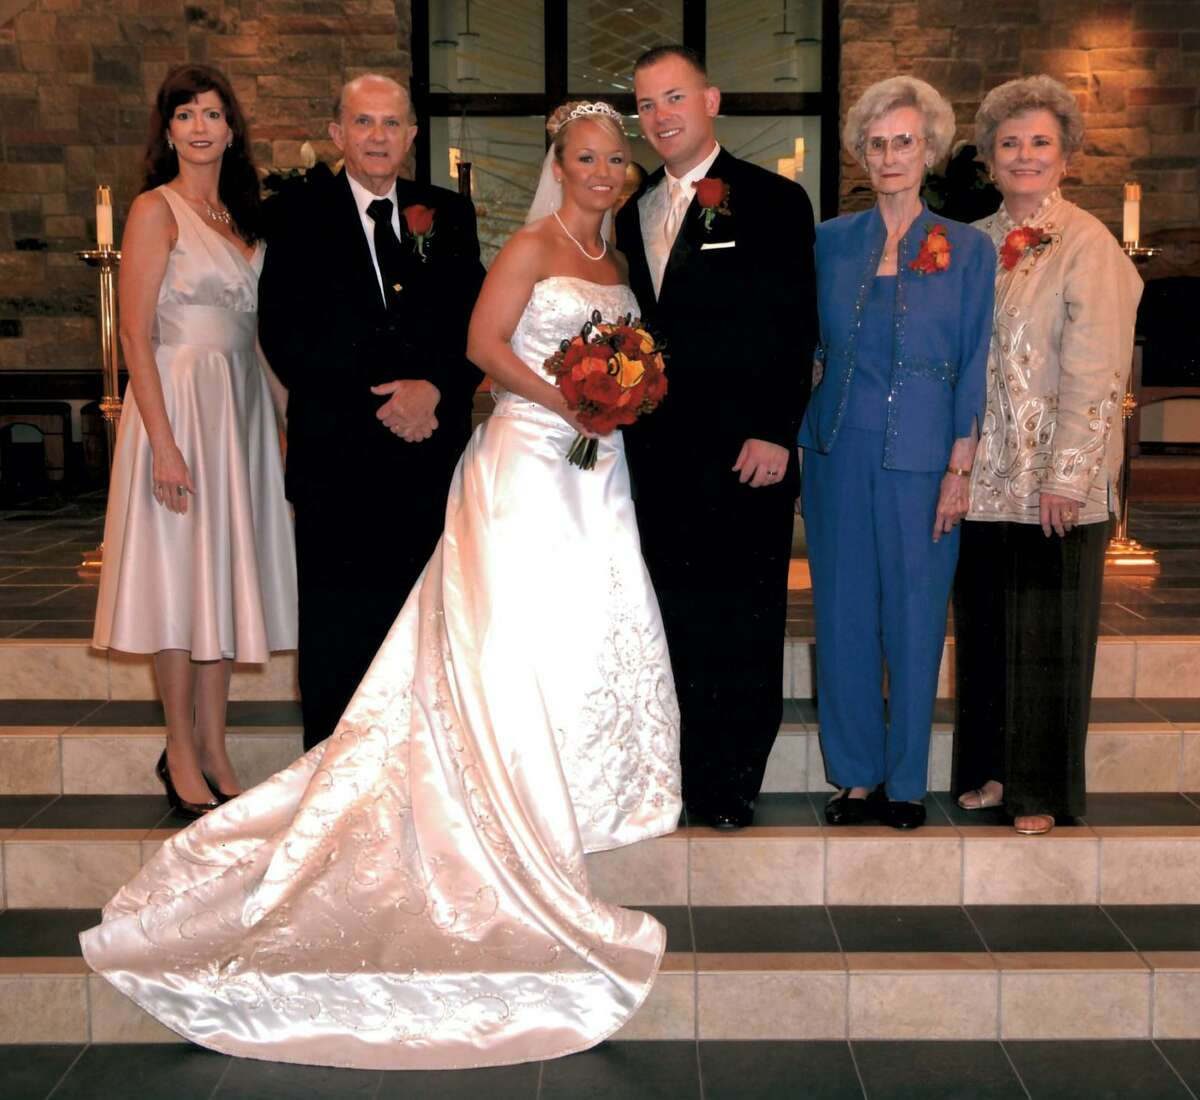 From left, Rachel Harris, daughter of Si and Bobbie Harris, Si Harris, Jessica Harris, wife of Beau Harris, Beau Harris, Si and Bobbie's grandson, Katie Hill, Bobbie's mother, and Bobbie Harris at Jessica and Beau's wedding.